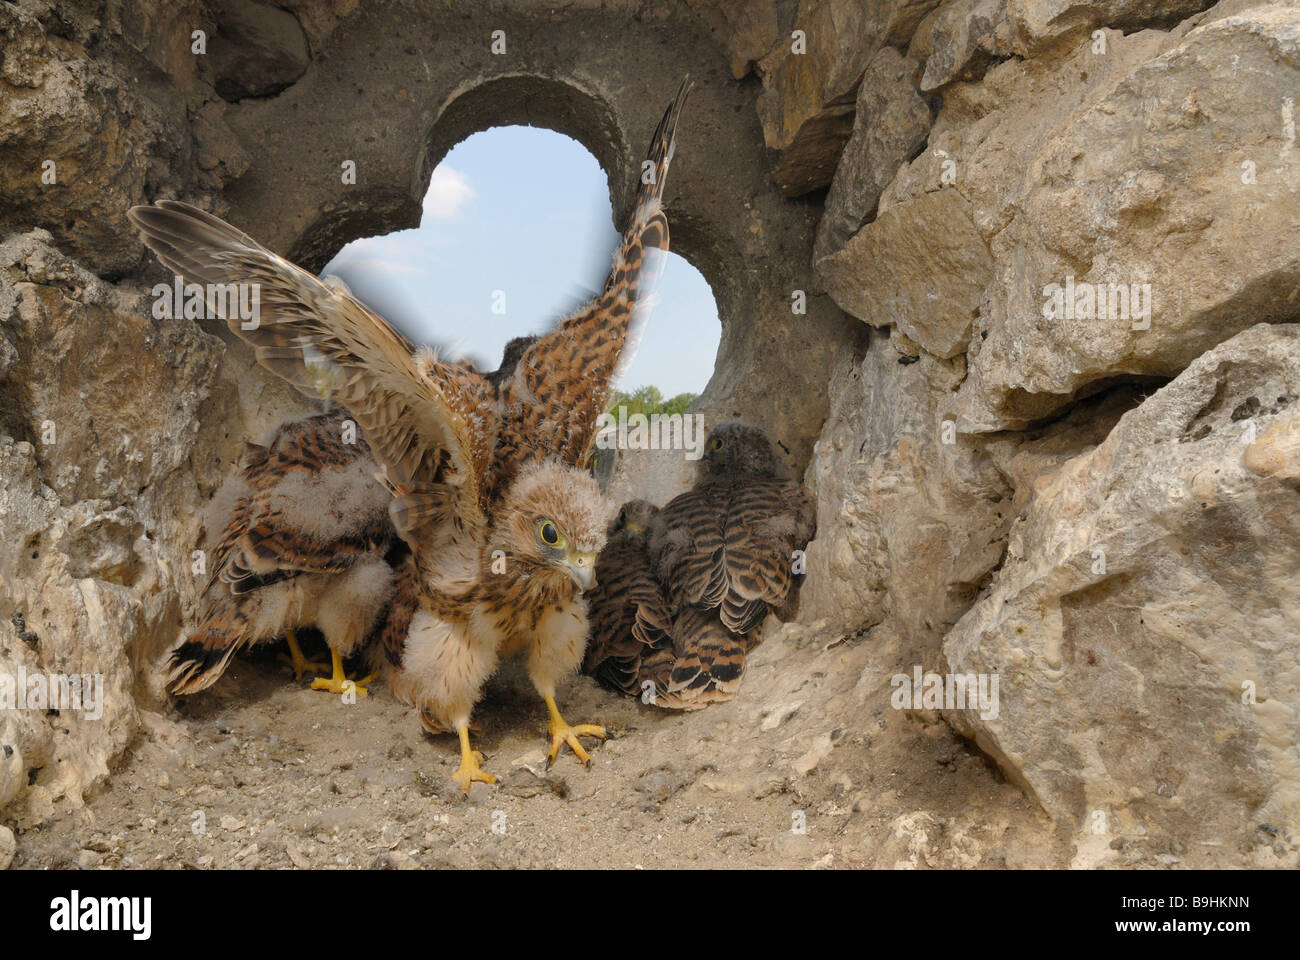 Fledgeing Common Kestrels (Falco tinnunculus) in the nest, stroking of wings is being practiced, muscular training - Stock Image